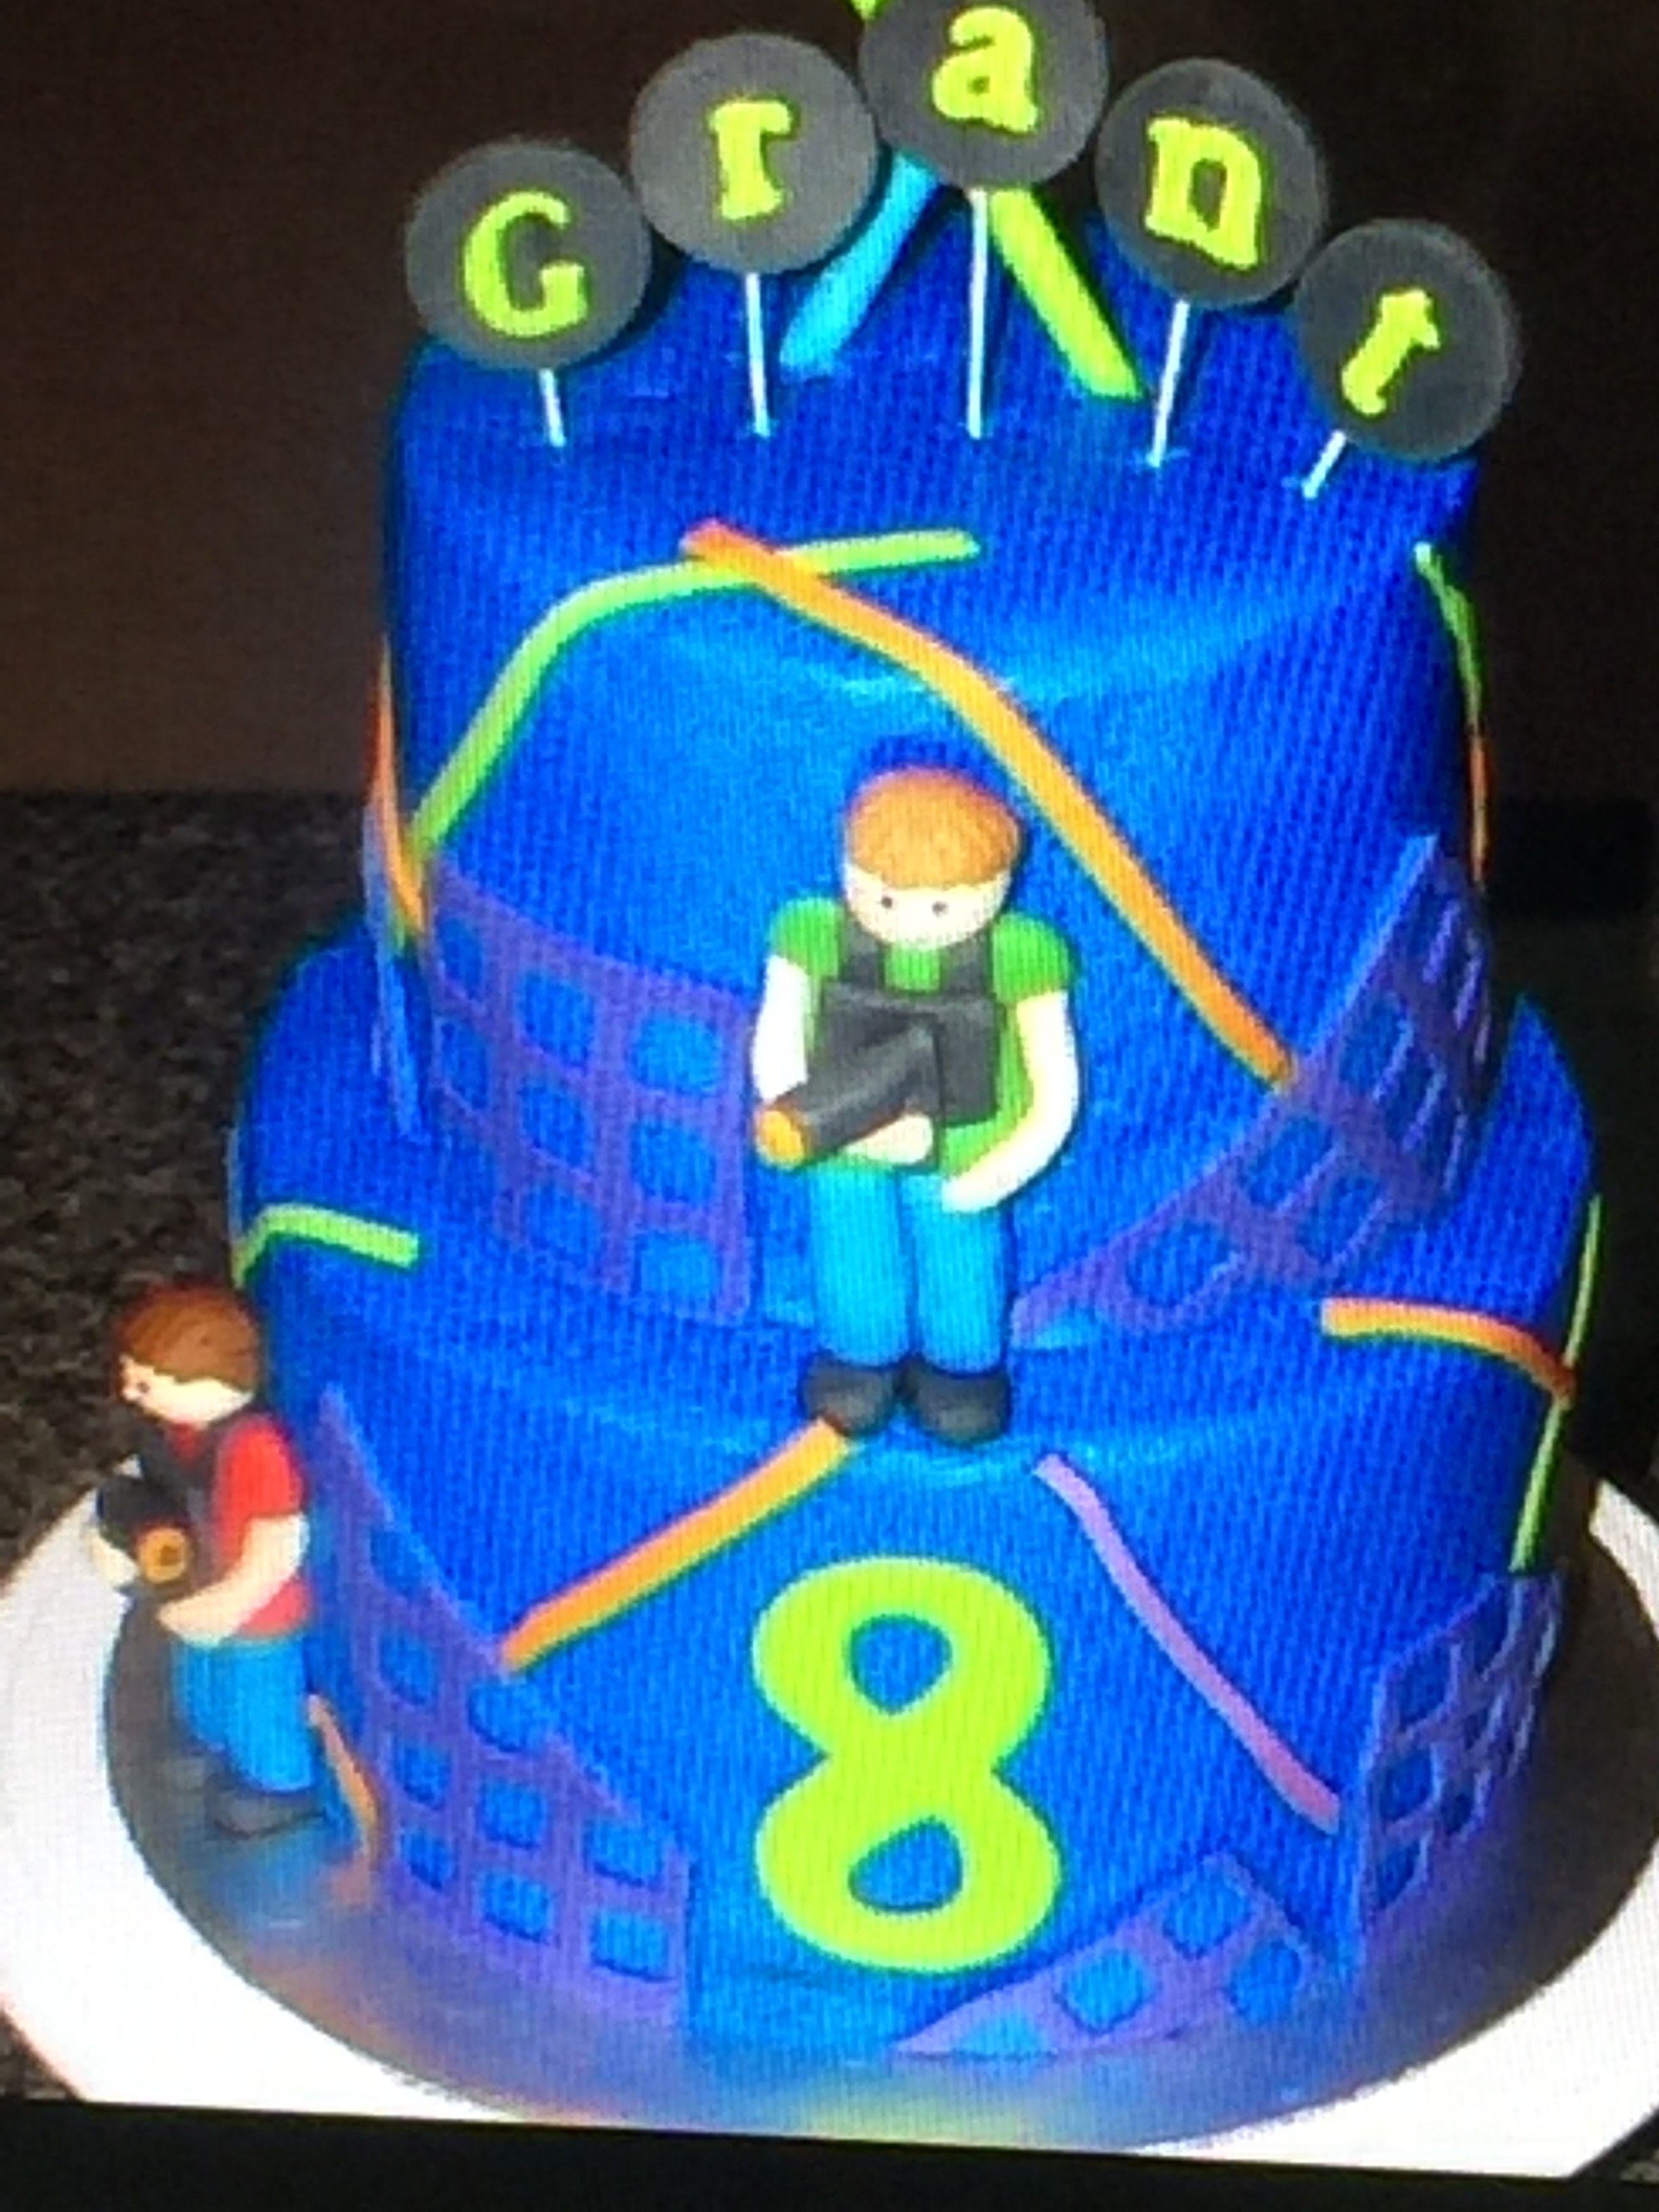 3579, eighth birthday, 8th birthday, laser tag, blue, neon, figure, figures, tiered